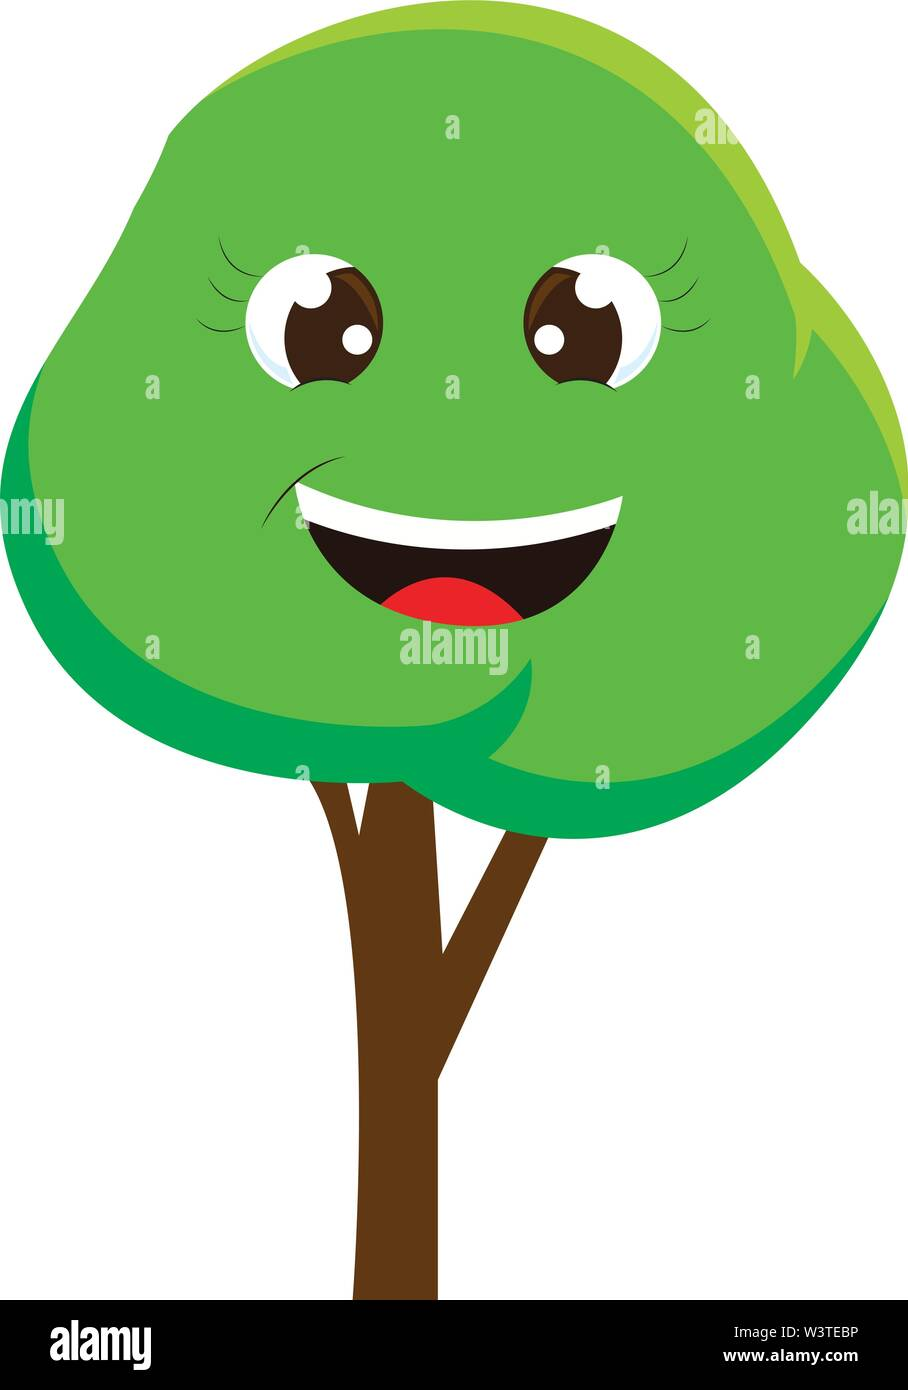 A Cartoon Of A Happy Tree With Big Eyes Vector Color Drawing Or Illustration Stock Vector Image Art Alamy